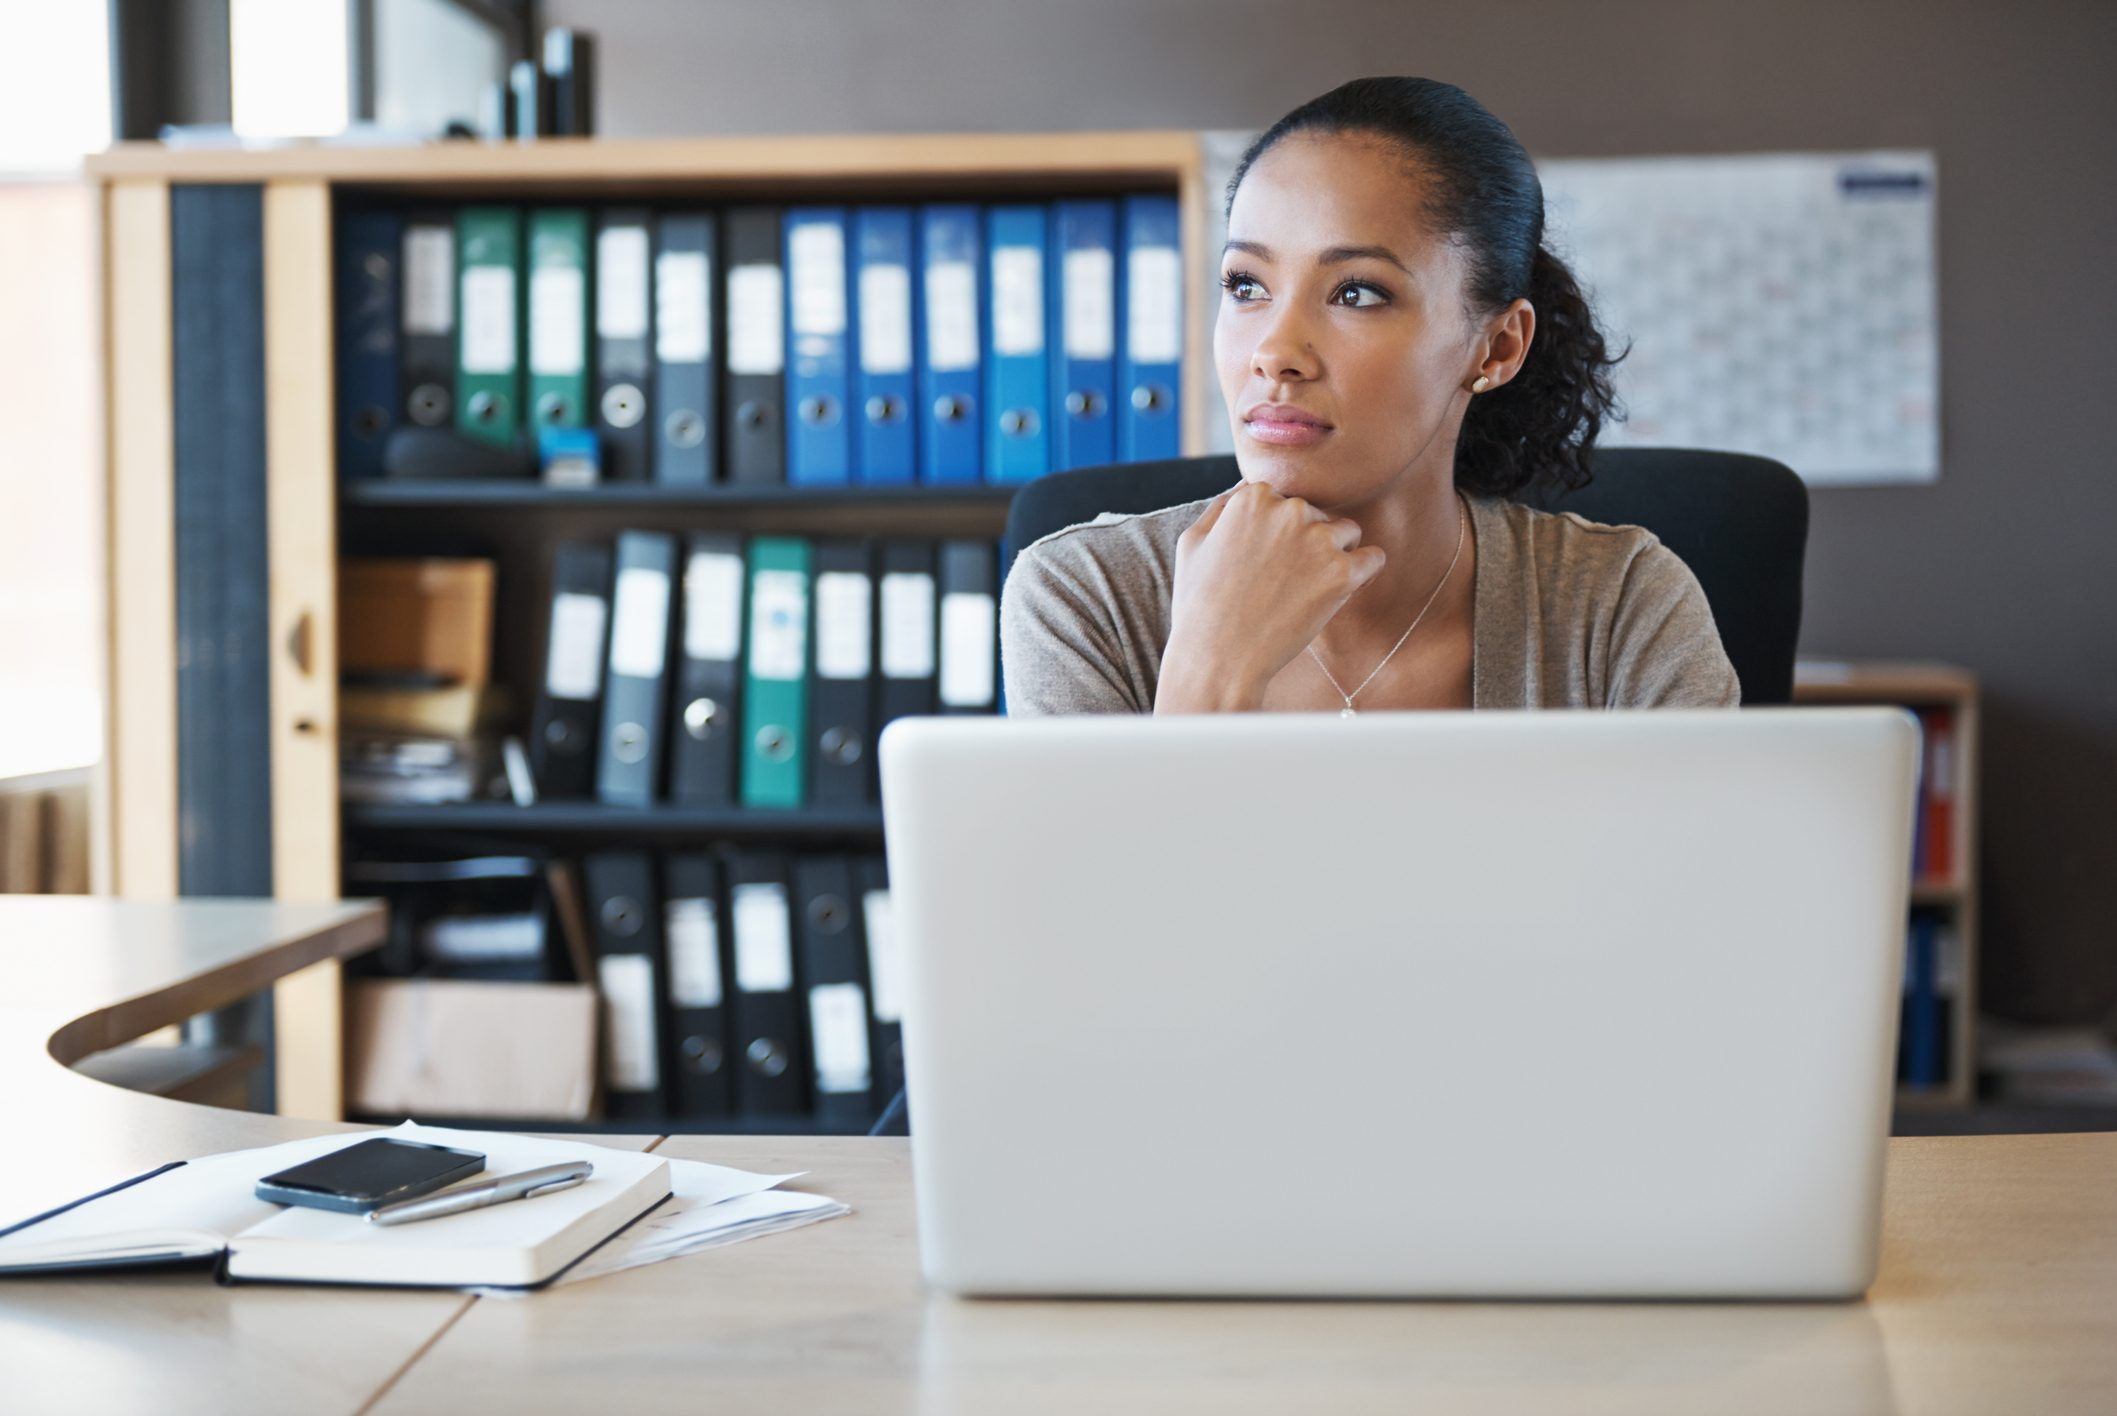 woman getting distracted while working